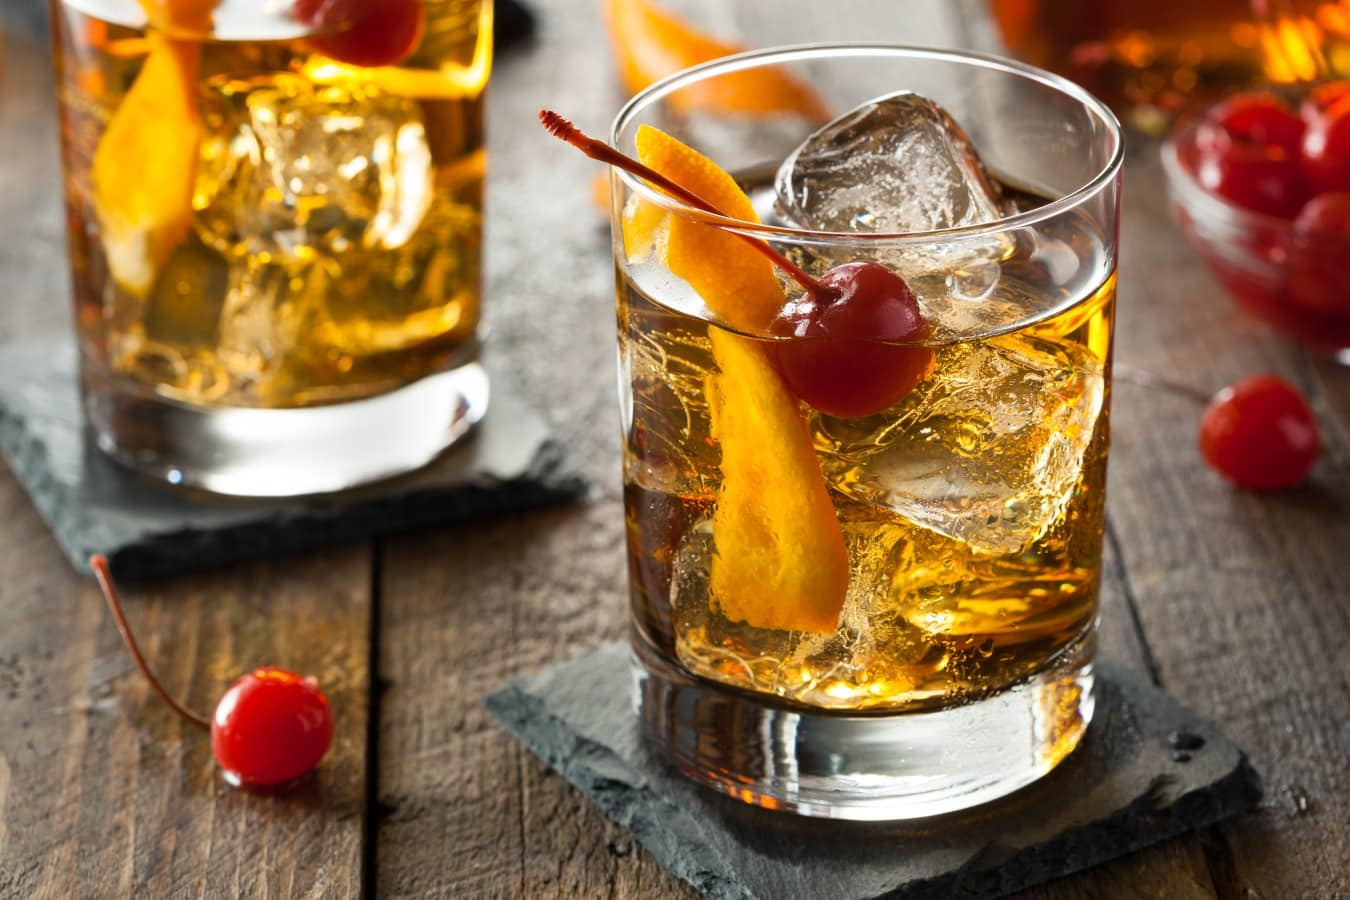 cocktails like old fashioned